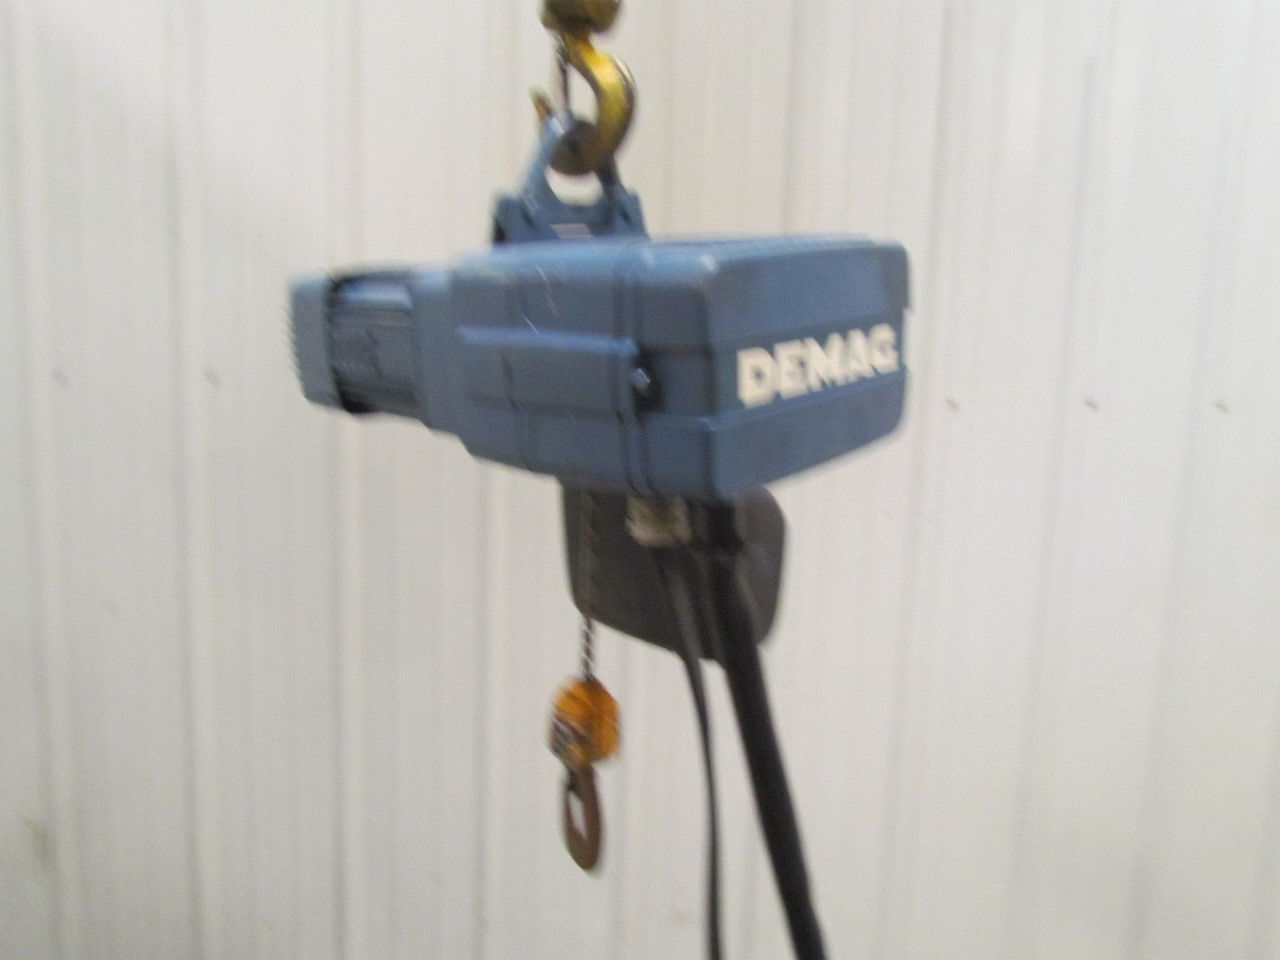 Demag Hoist Electric Pictures to Pin on Pinterest - PinsDaddy